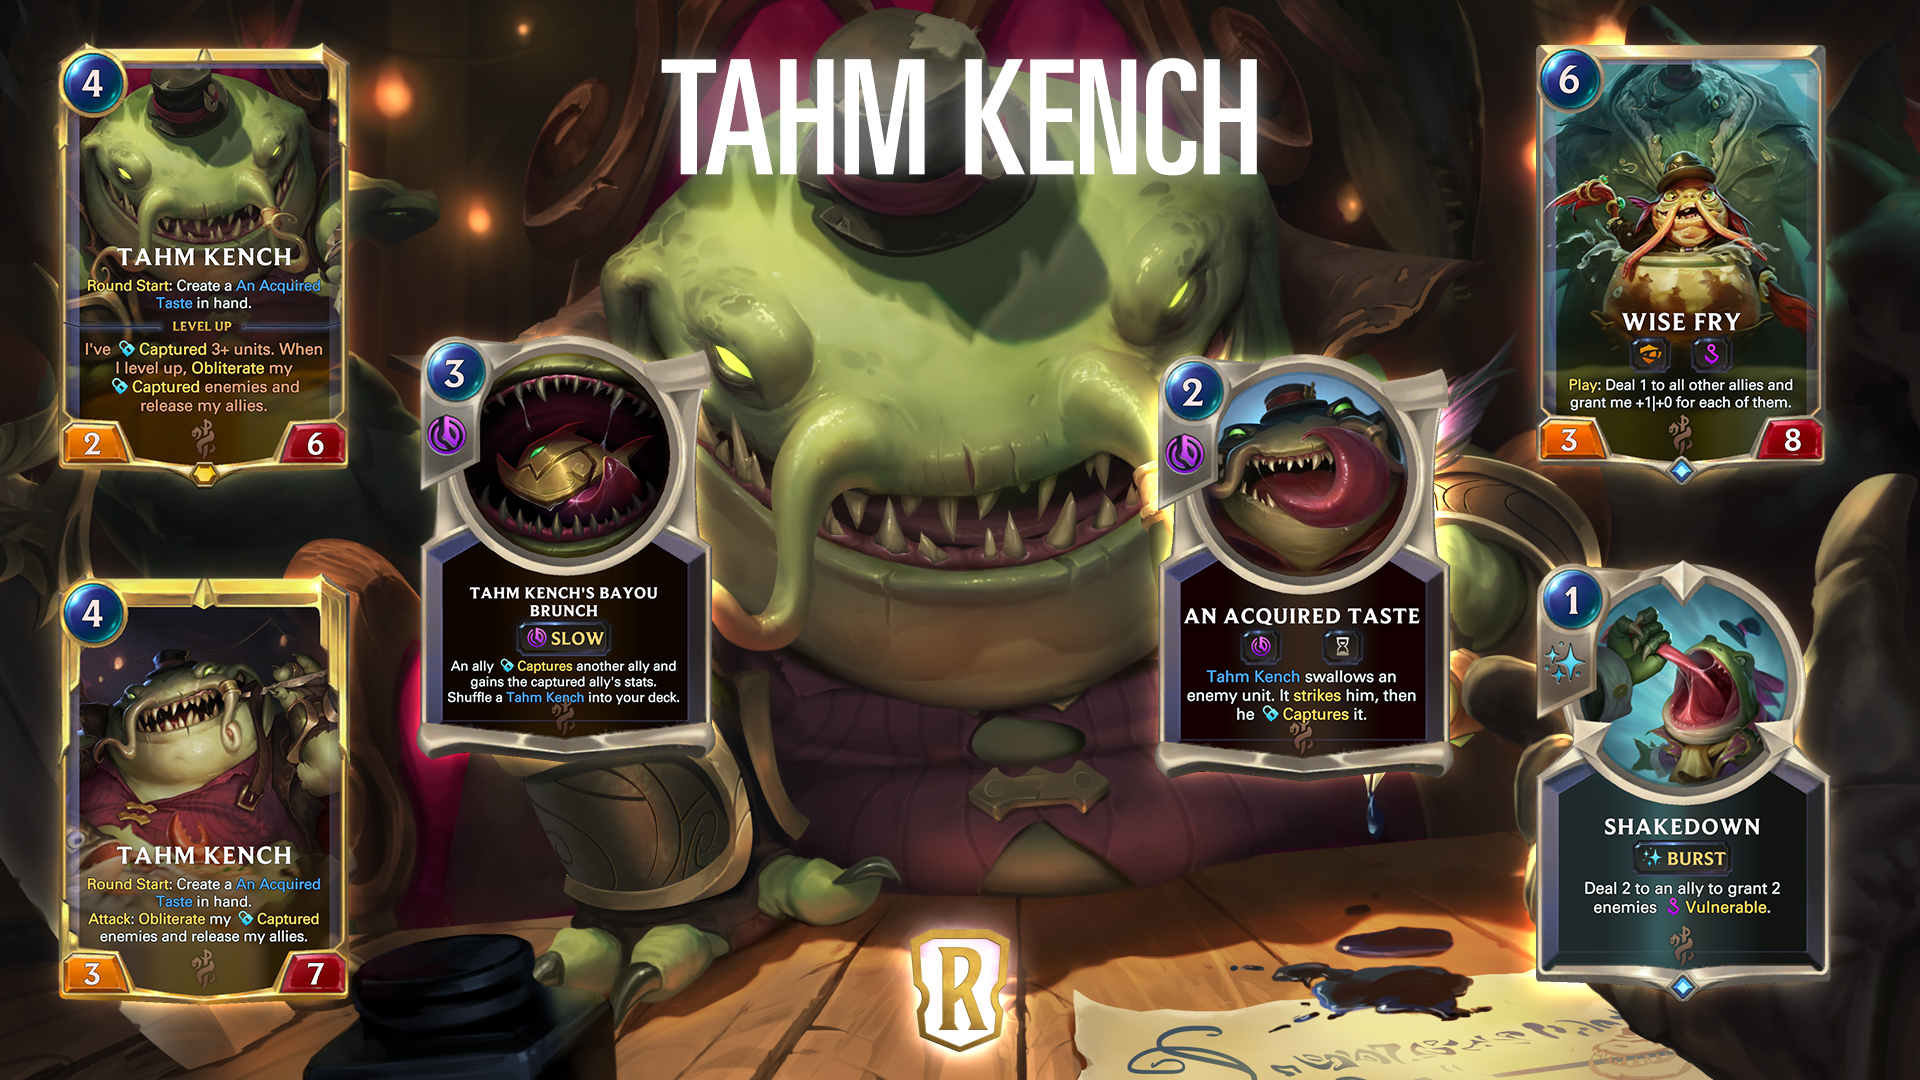 tahm kench revealed cards